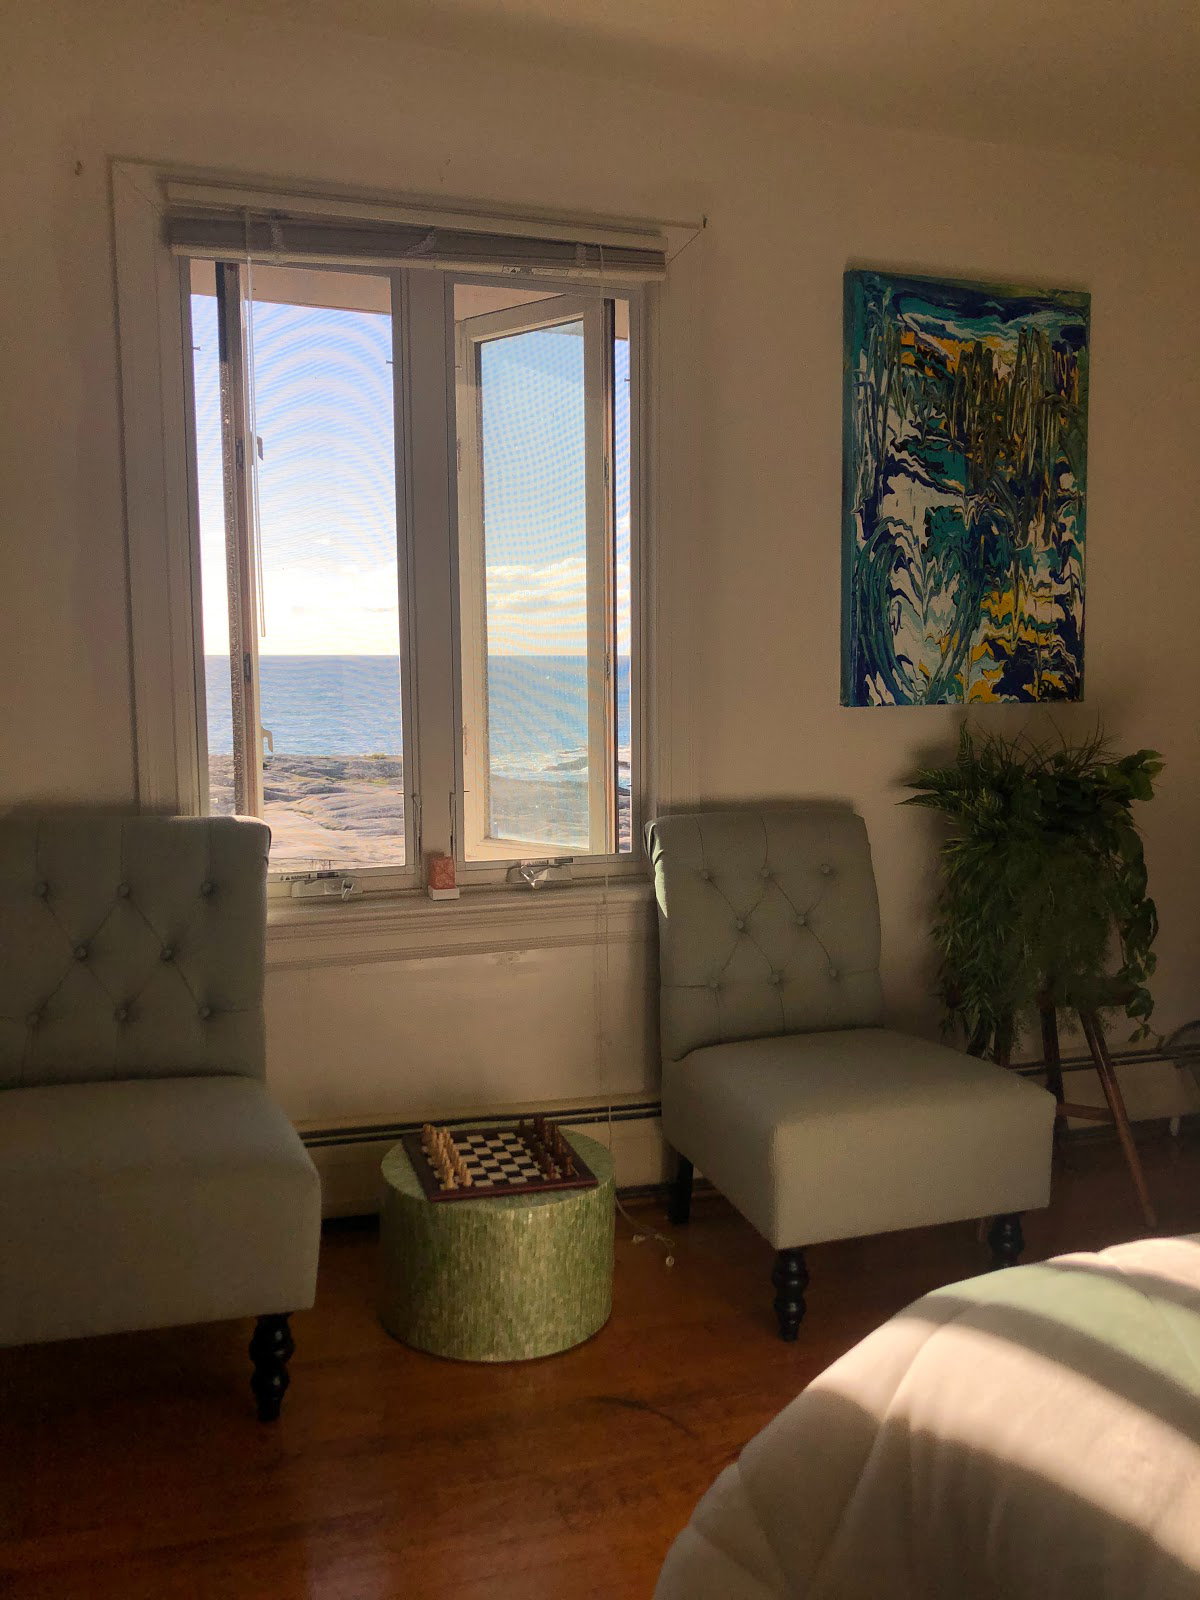 Two chairs are pictured that are right next to a window overlooking the ocean.